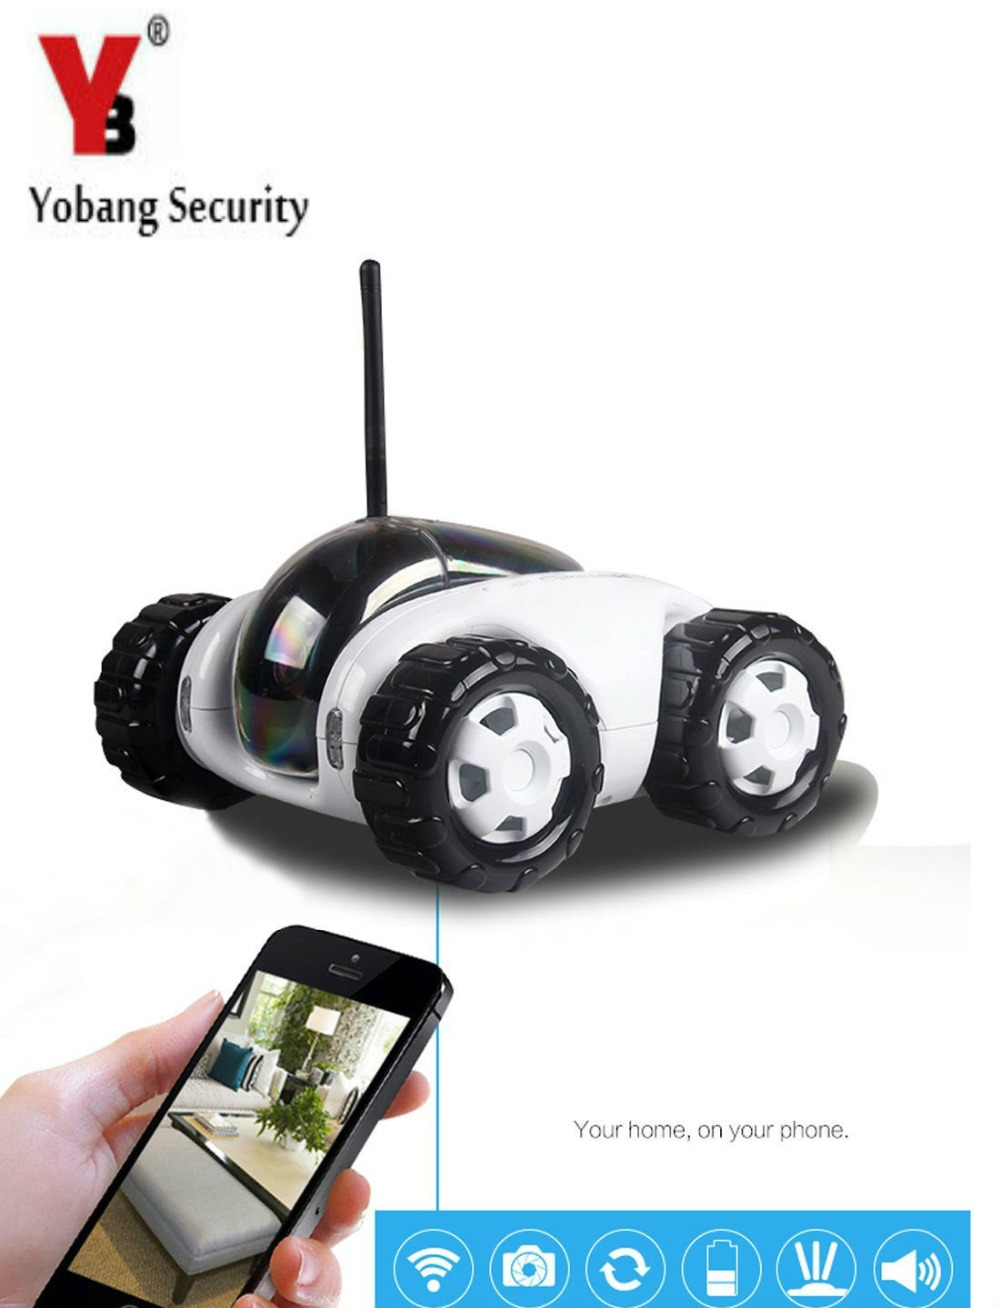 Yobang Security <font><b>wireless</b></font> <font><b>charger</b></font> WiFi remote tank car camera video Night Vision mobile 3MP IP Camera Smart Phone remote control